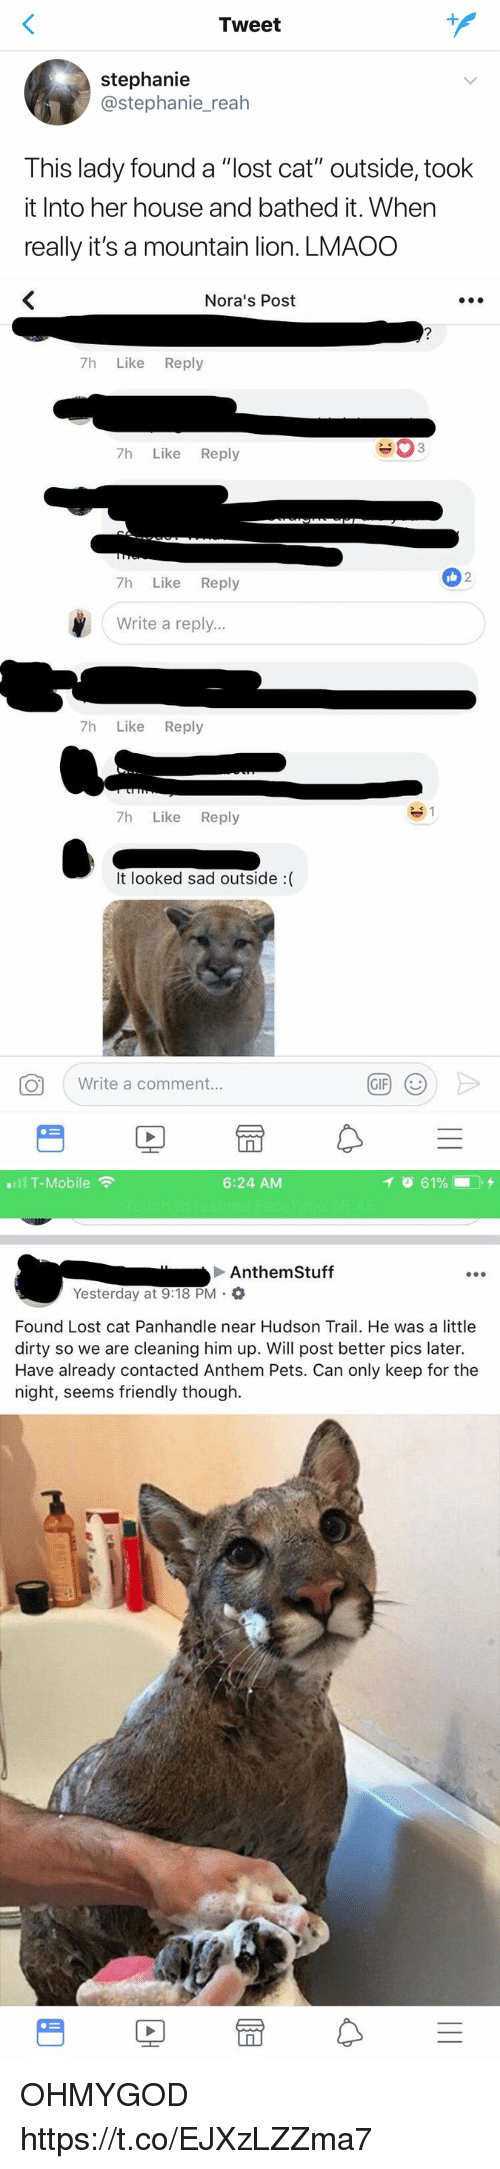 "Gif, T-Mobile, and Lost: Tweet  stephanie  @stephanie_reah  This lady found a ""lost cat"" outside, took  it Into her house and bathed it. When  really it's a mountain lion. LMAOO   Nora's Post  7h Like Reply  7h Like Reply  2  7h Like Reply  Write a reply...  7h Like Reply  7h Like Reply  It looked sad outside :(  Write a comment.  GIF   .111 T-Mobile令  6:24 AM  イ  61%- . +  Anthem Stuff  Yesterday at 9:18 PM .  Found Lost cat Panhandle near Hudson Trail. He was a little  dirty so we are cleaning him up. Will post better pics later.  Have already contacted Anthem Pets. Can only keep for the  night, seems friendly though.  PE OHMYGOD https://t.co/EJXzLZZma7"